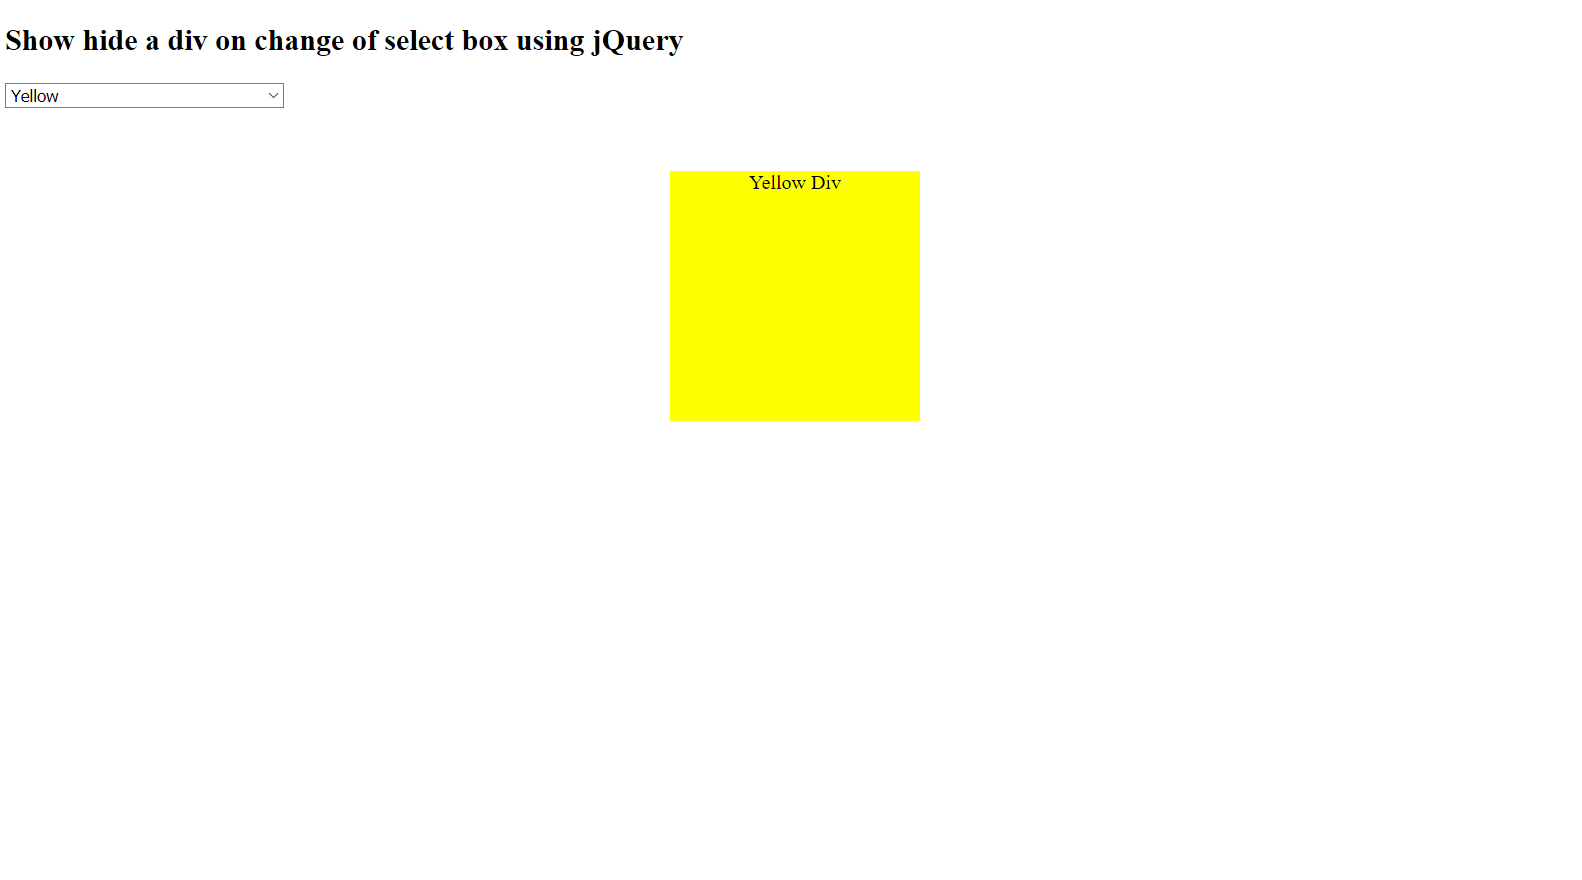 Show hide a div on change of select box using jQuery